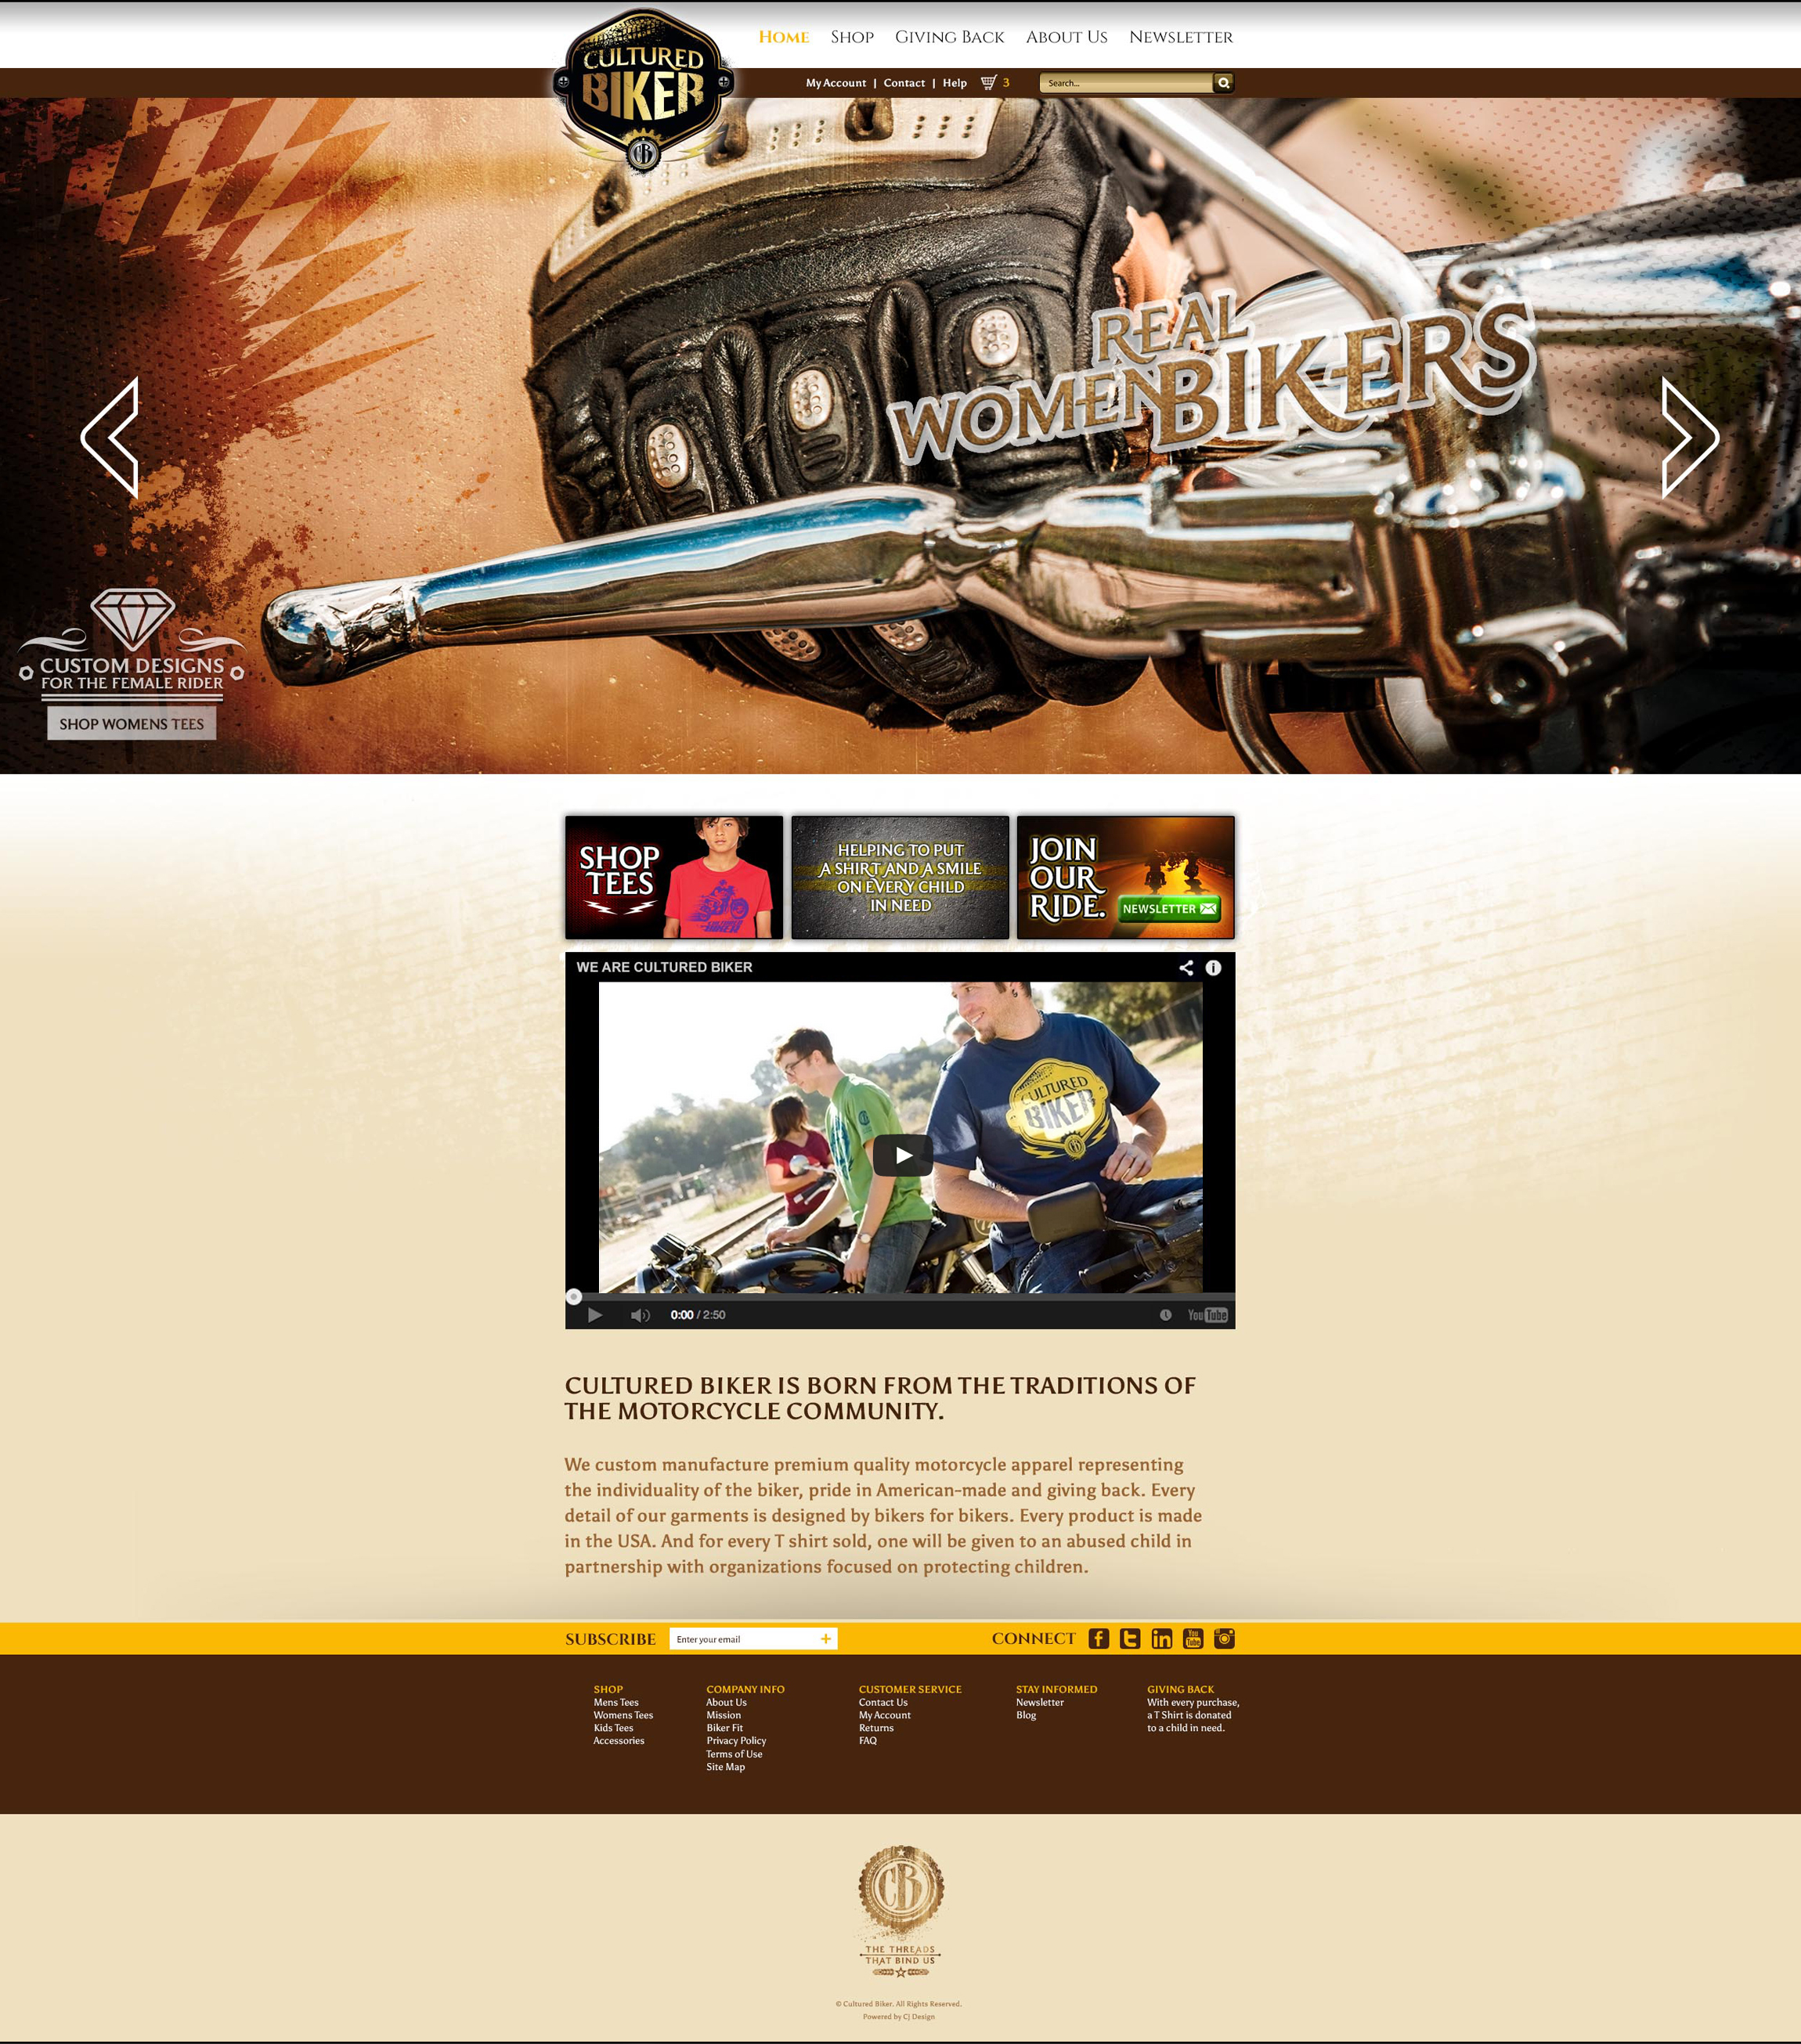 Cultured Biker motorcycle apparel Website design on WordPress with WooCommerce